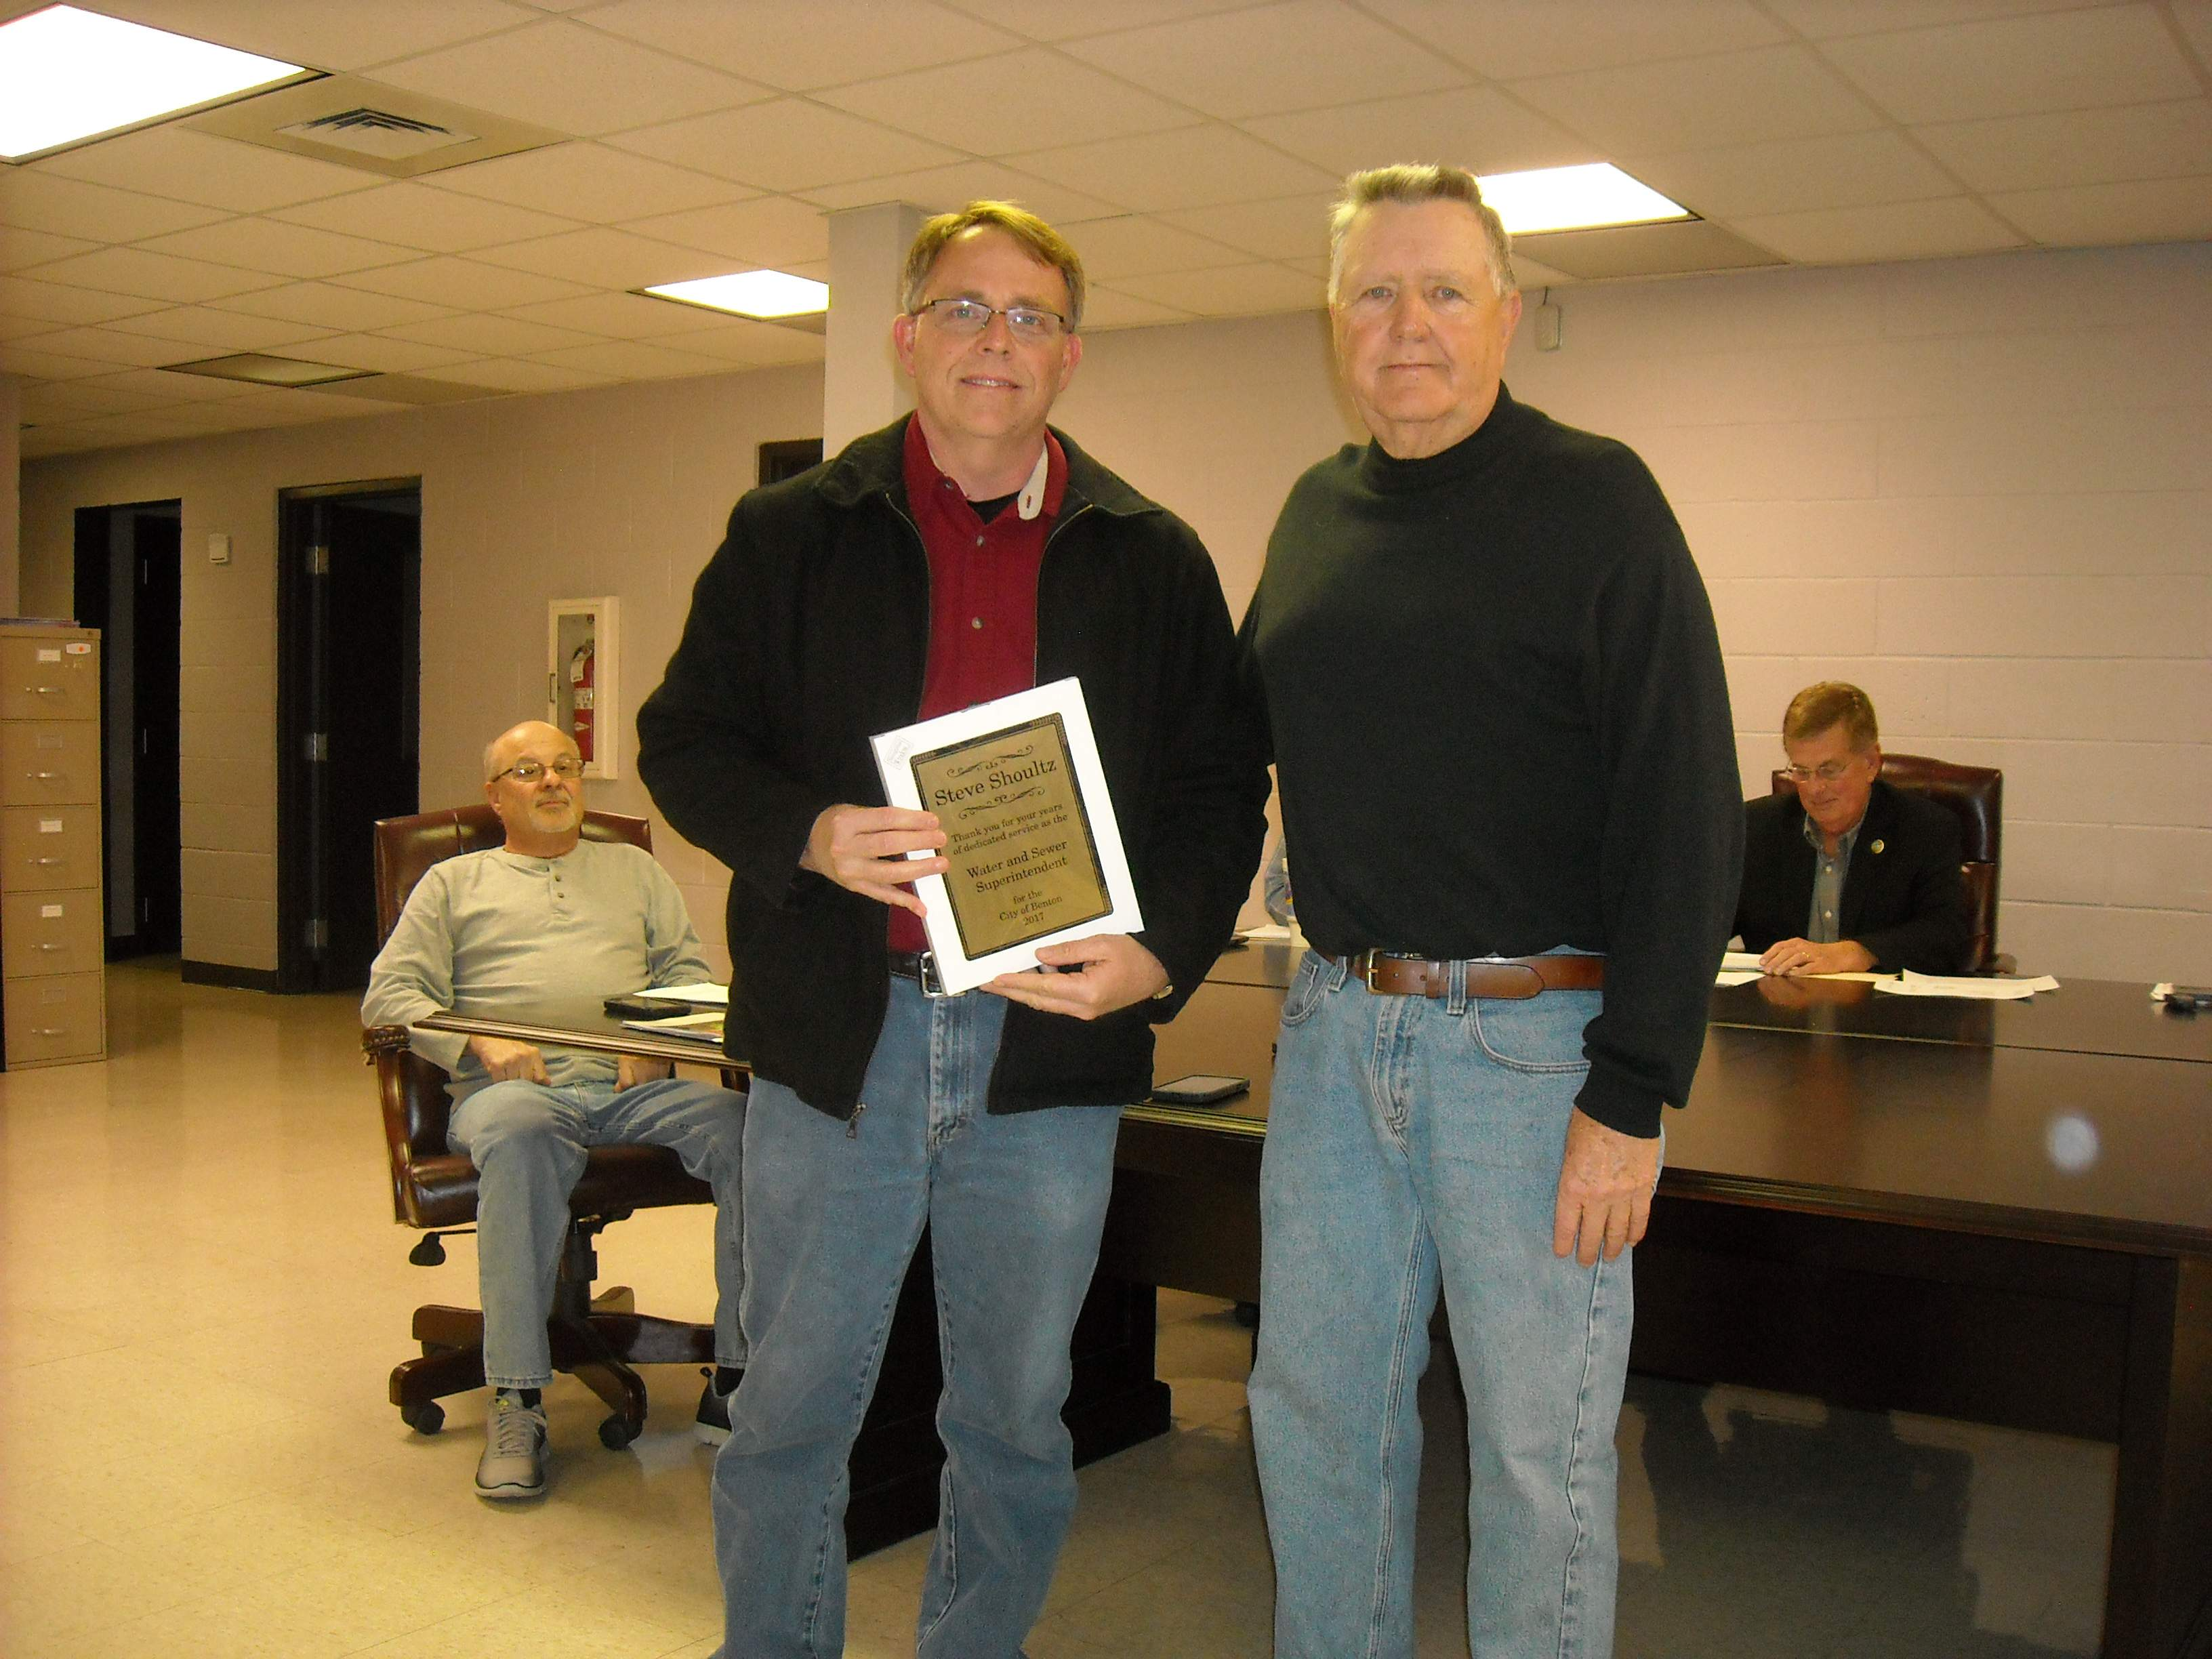 Public Property Commissioner Ronnie Baumgarte, right, presents Steve Shoultz with a plaque for his years of service as the city's water and sewer superintendent. Shoultz's letter of resignation, effective at the end of the month, was read during a city council meeting.